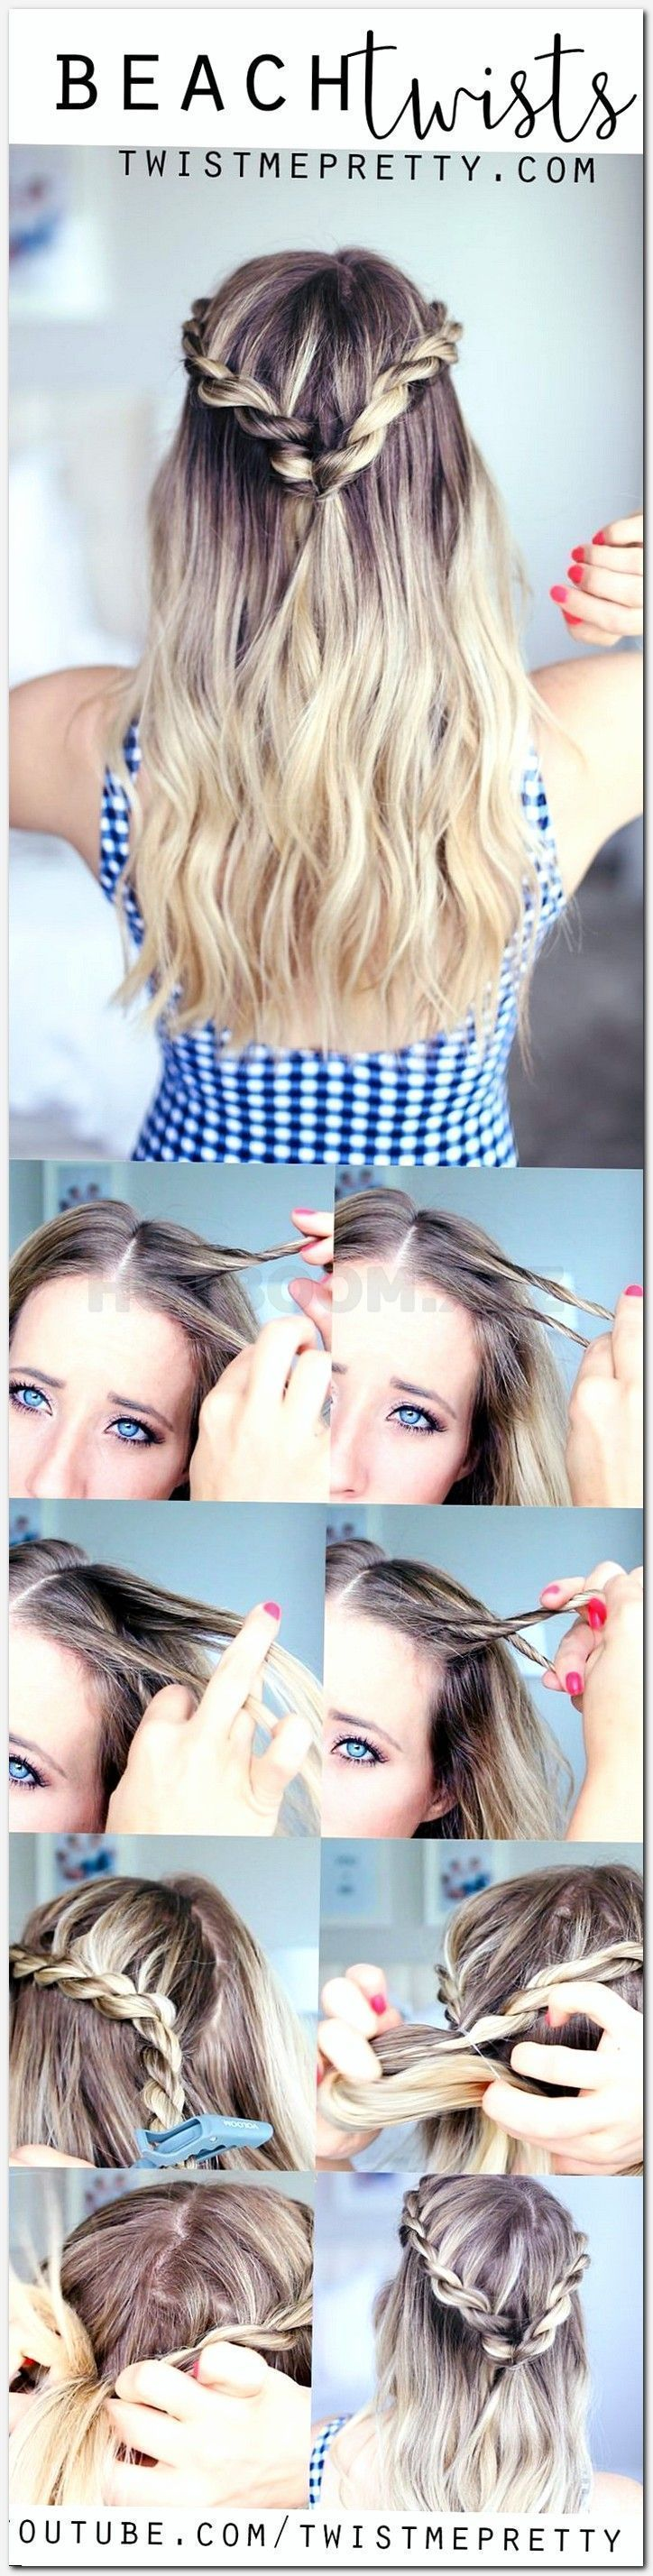 simple medium length hairstyles, fast cute easy hairstyles, mens top haircuts, modern haircuts, hot braid styles, best wavy hairstyles, easy upstyles for long hair, short hairstyles com, bride and bridesmaid hair, , shoulder length haircut styles, easy h #easyhairstylesformediumhair #easyhairstylesformoms #menshairstyleslong